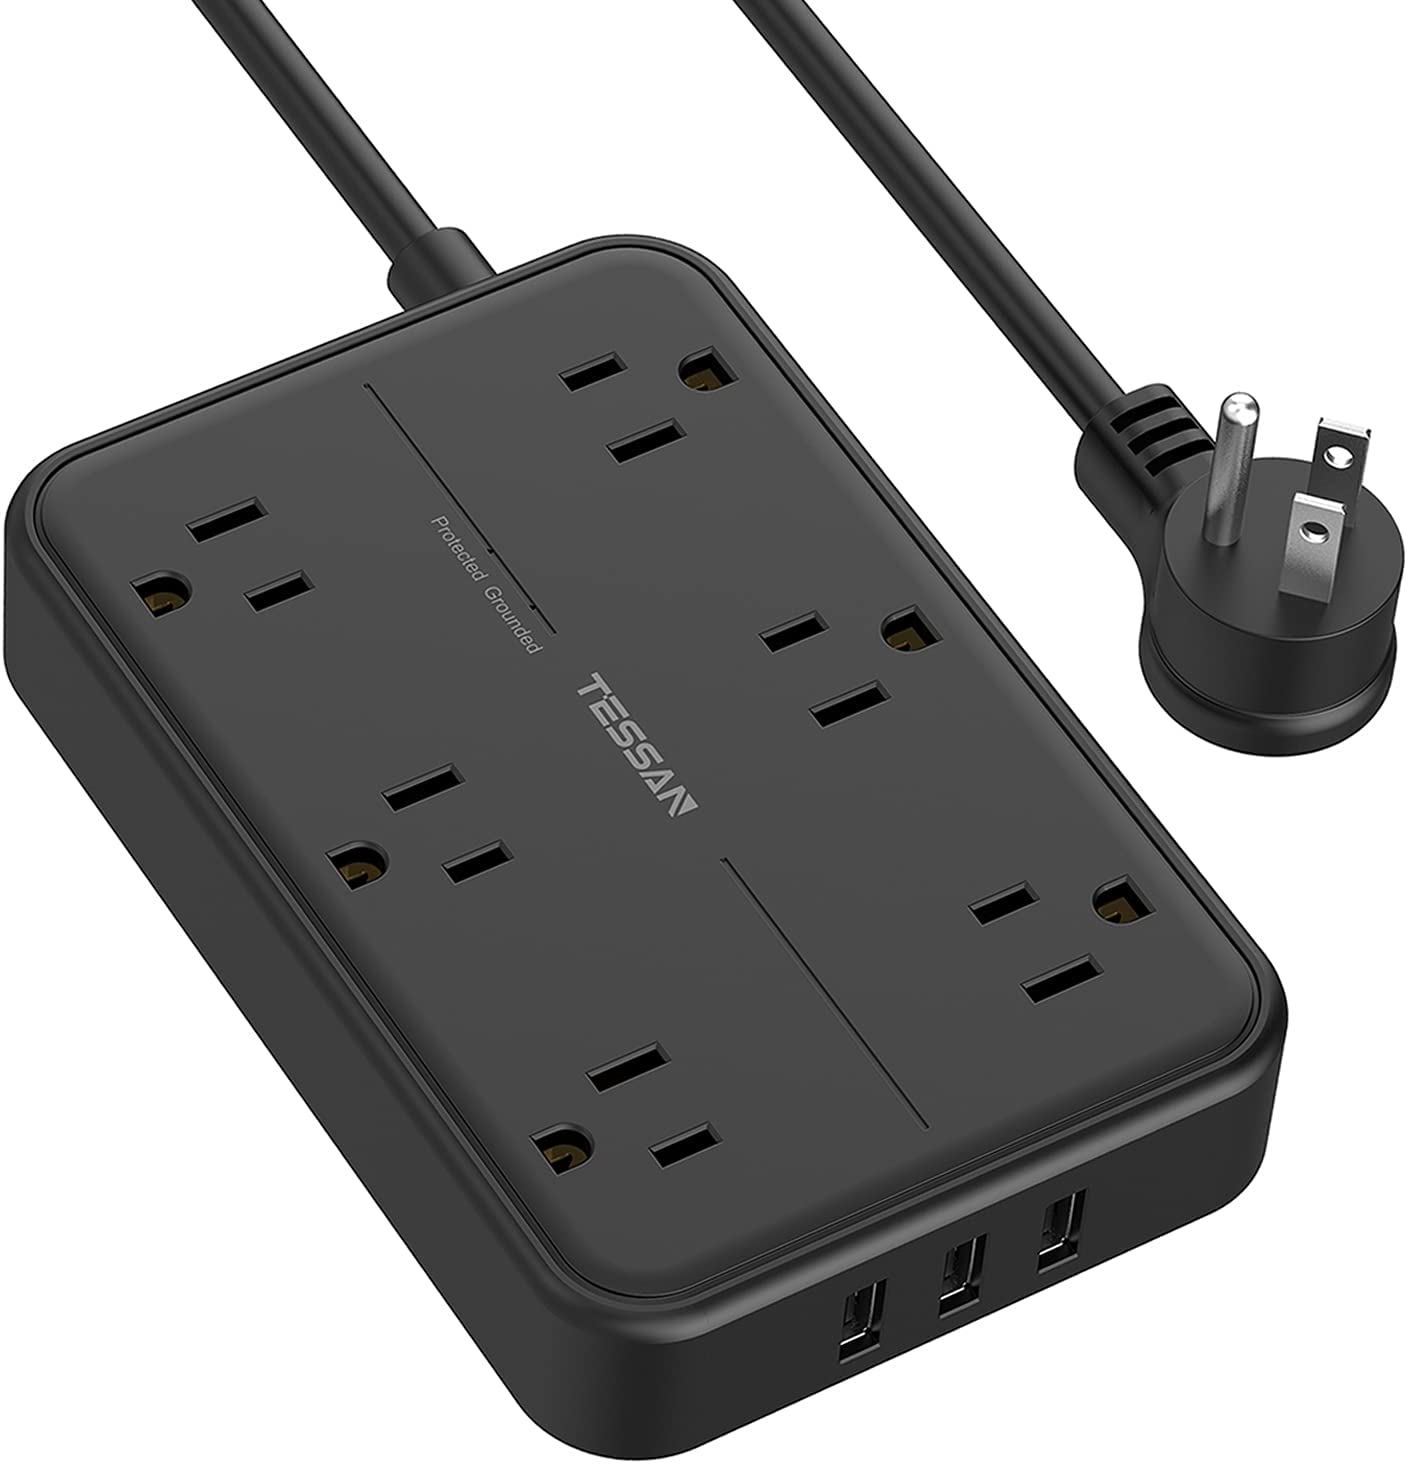 Surge Protector Power Strip with USB, TESSAN 6 Widely Spaced AC Outlets and 3 USB Charging Ports 5Ft Extension Cord, Flat Plug Wall Mount for Home, Dorm Room, Office and More, Black